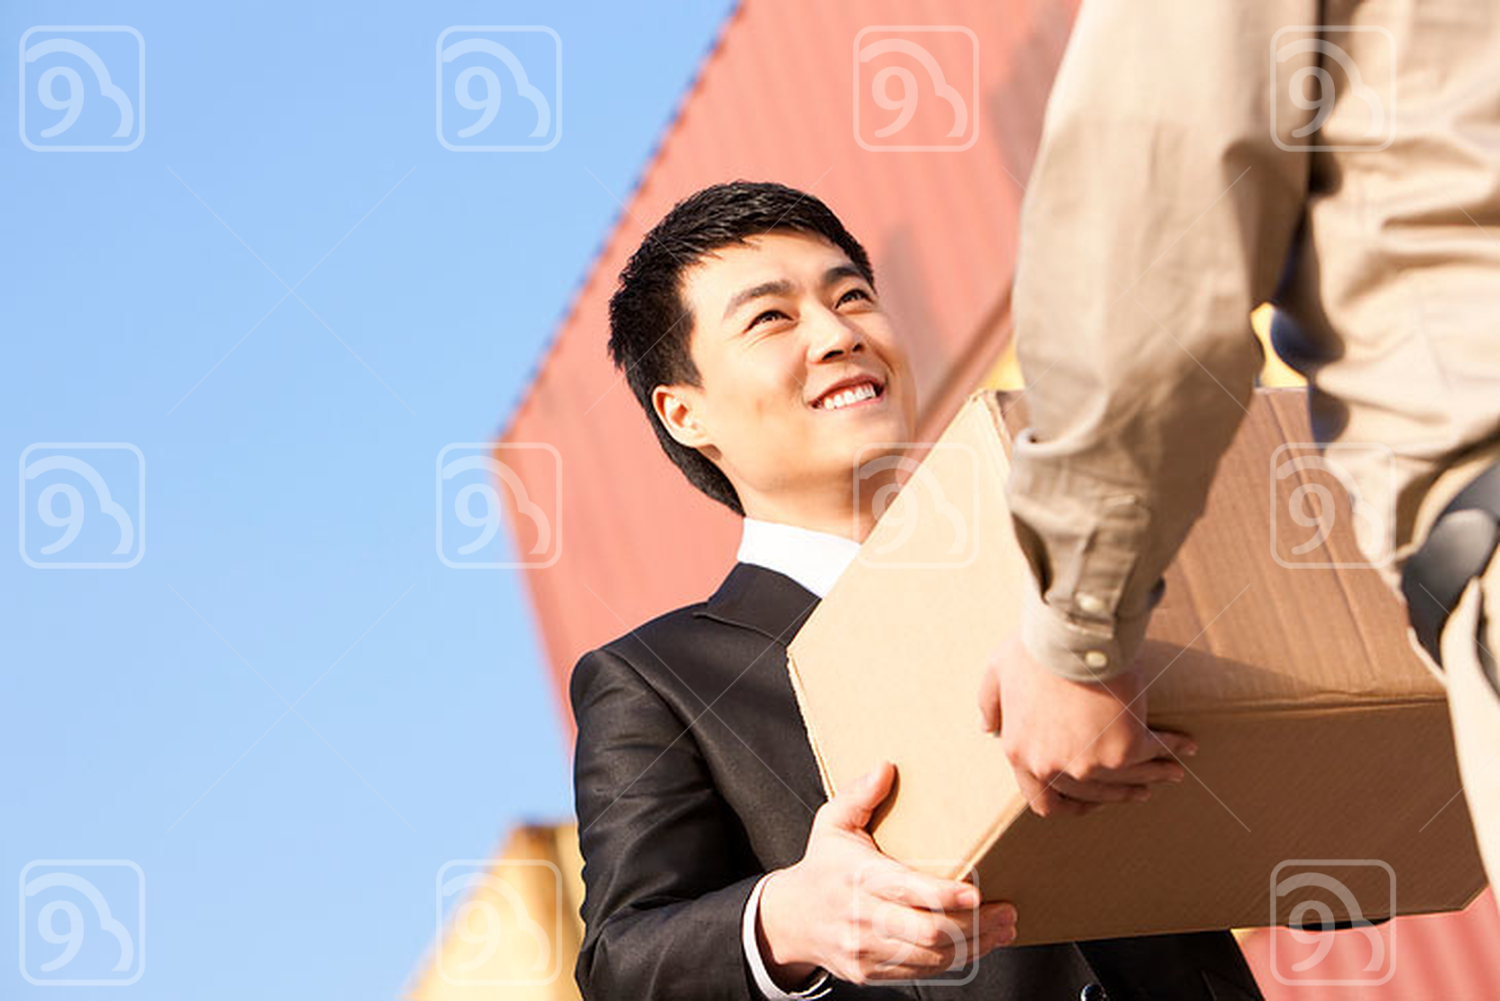 Chinese businessman and shipping industry worker giving and receiving a cardboard box